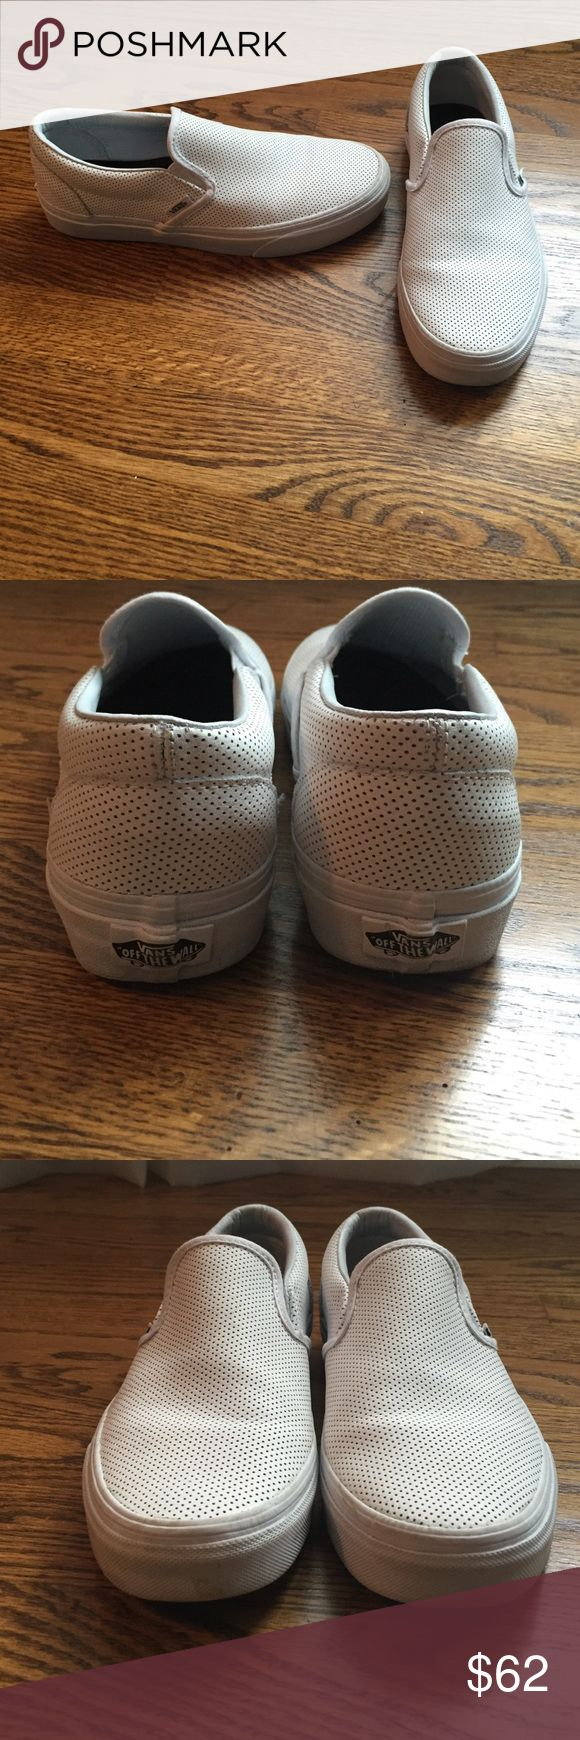 Size 8 White Leather vans Worn 1-2x, Great condition! Vans Shoes Sneakers